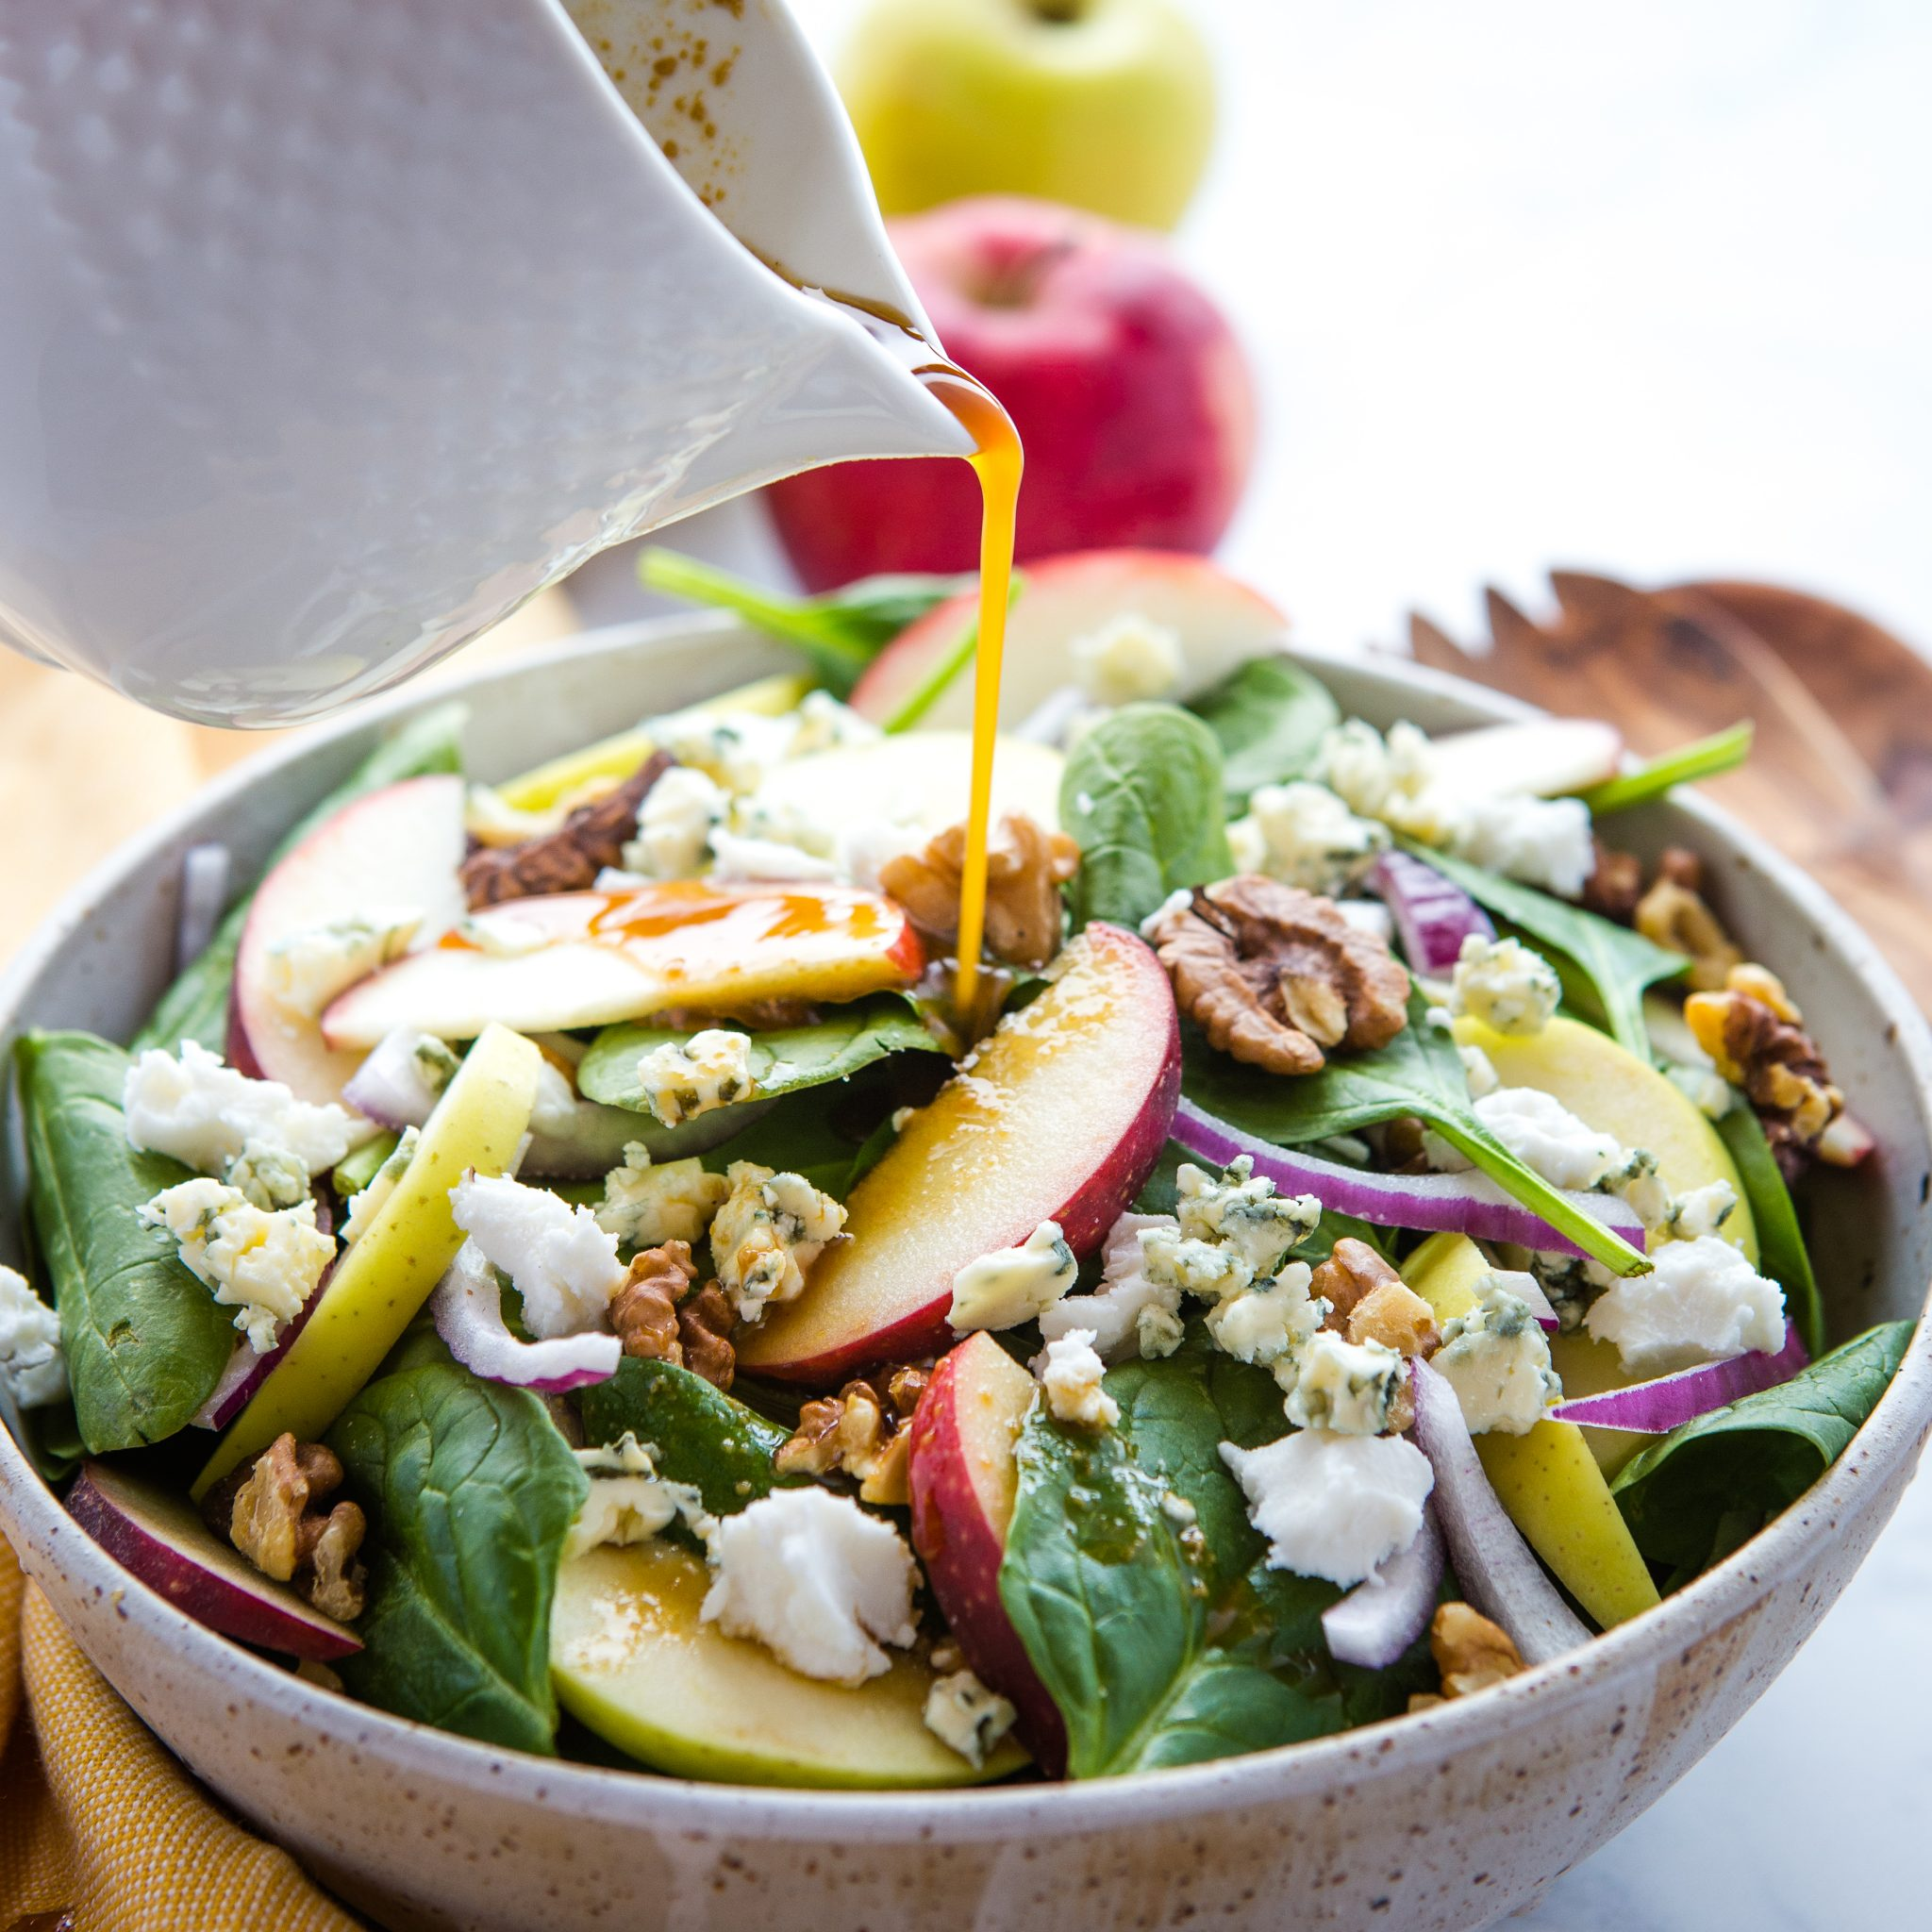 Apple Walnut Spinach Salad With Balsamic Vinaigrette The Busy Baker